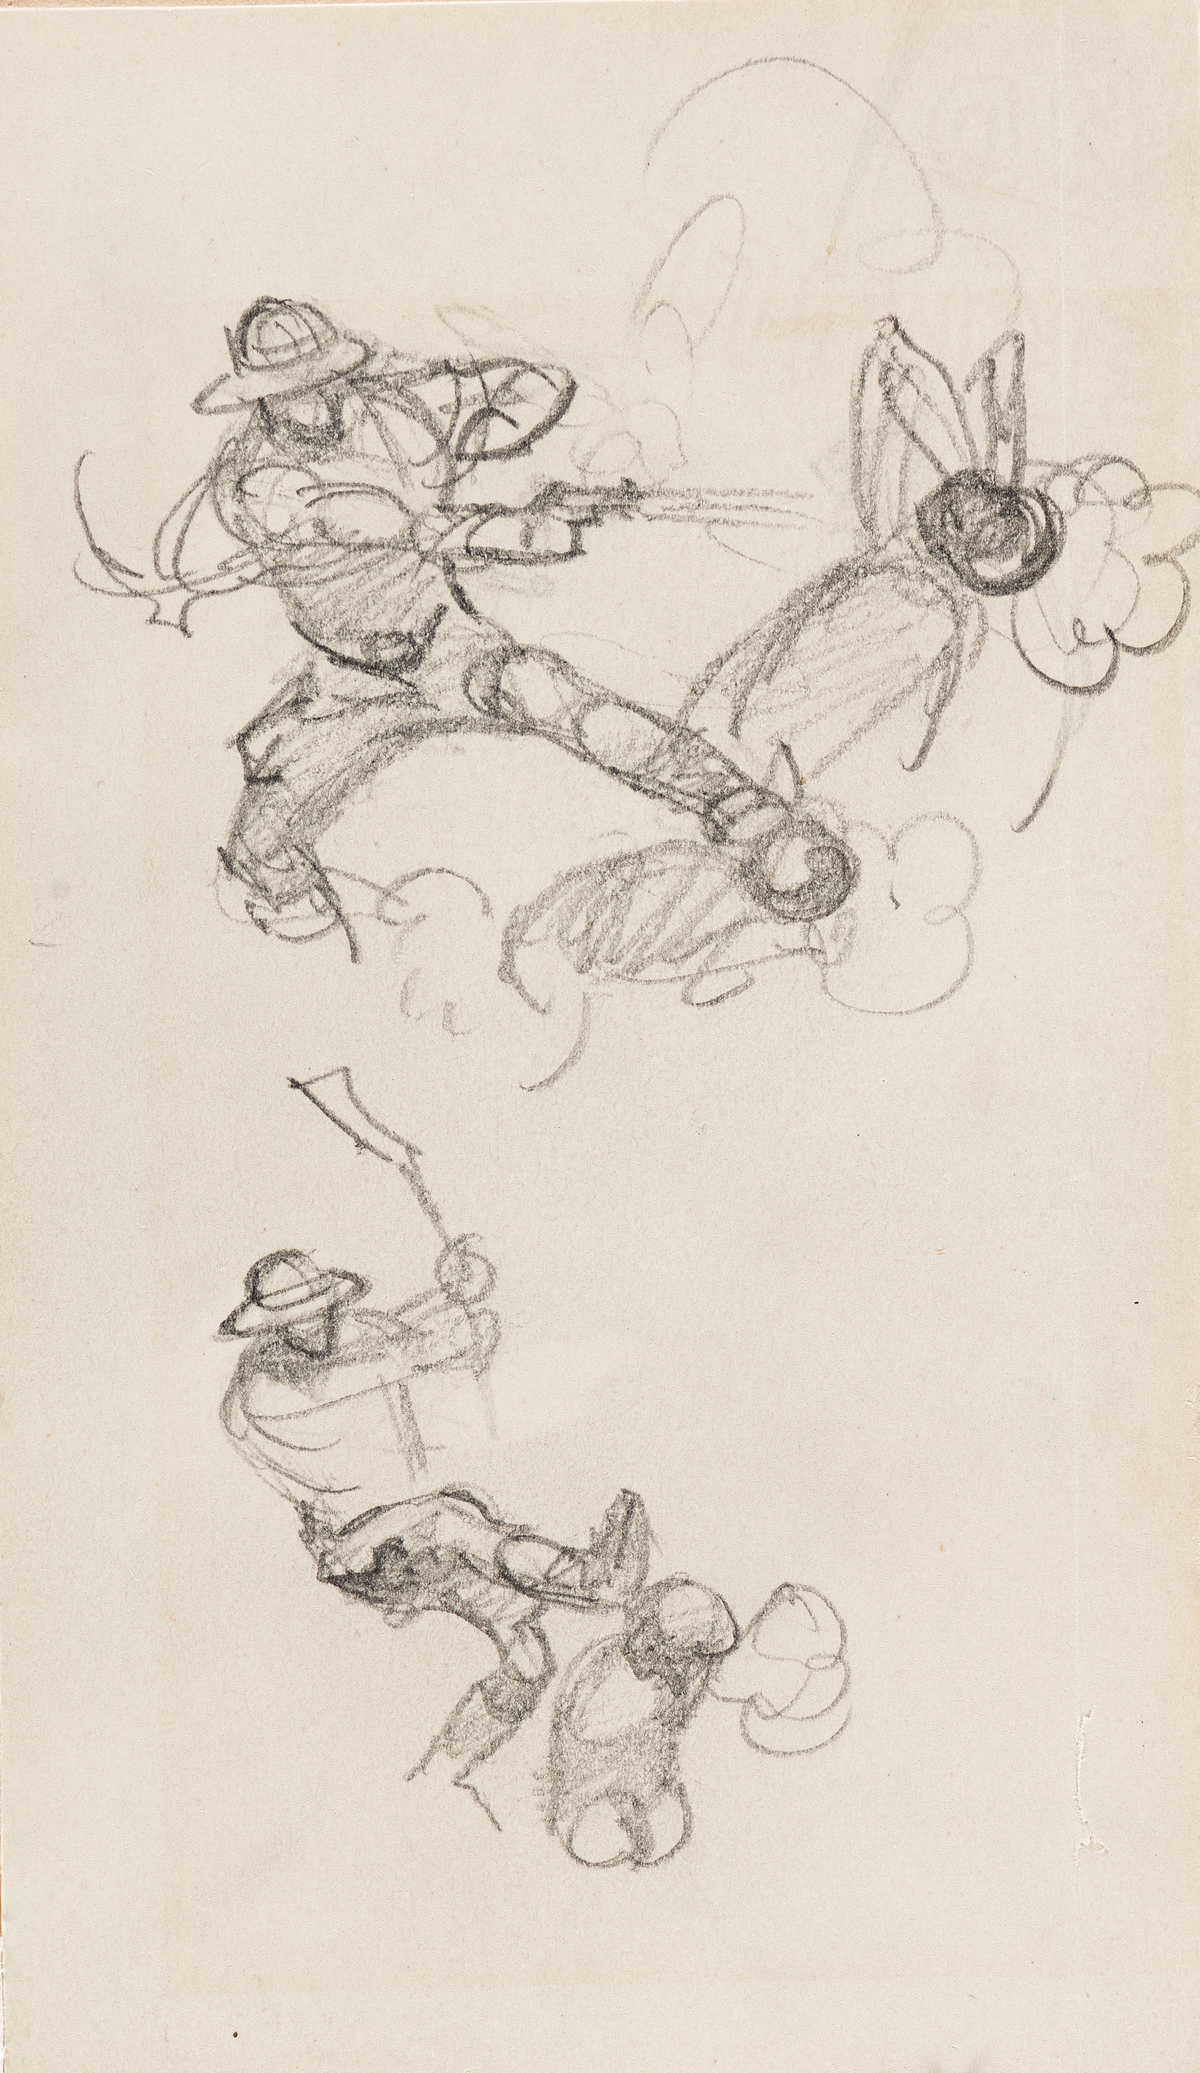 FRANK FRAZETTA (1928-2010) Concept sketch for cover of National Lampoon, April 1971.